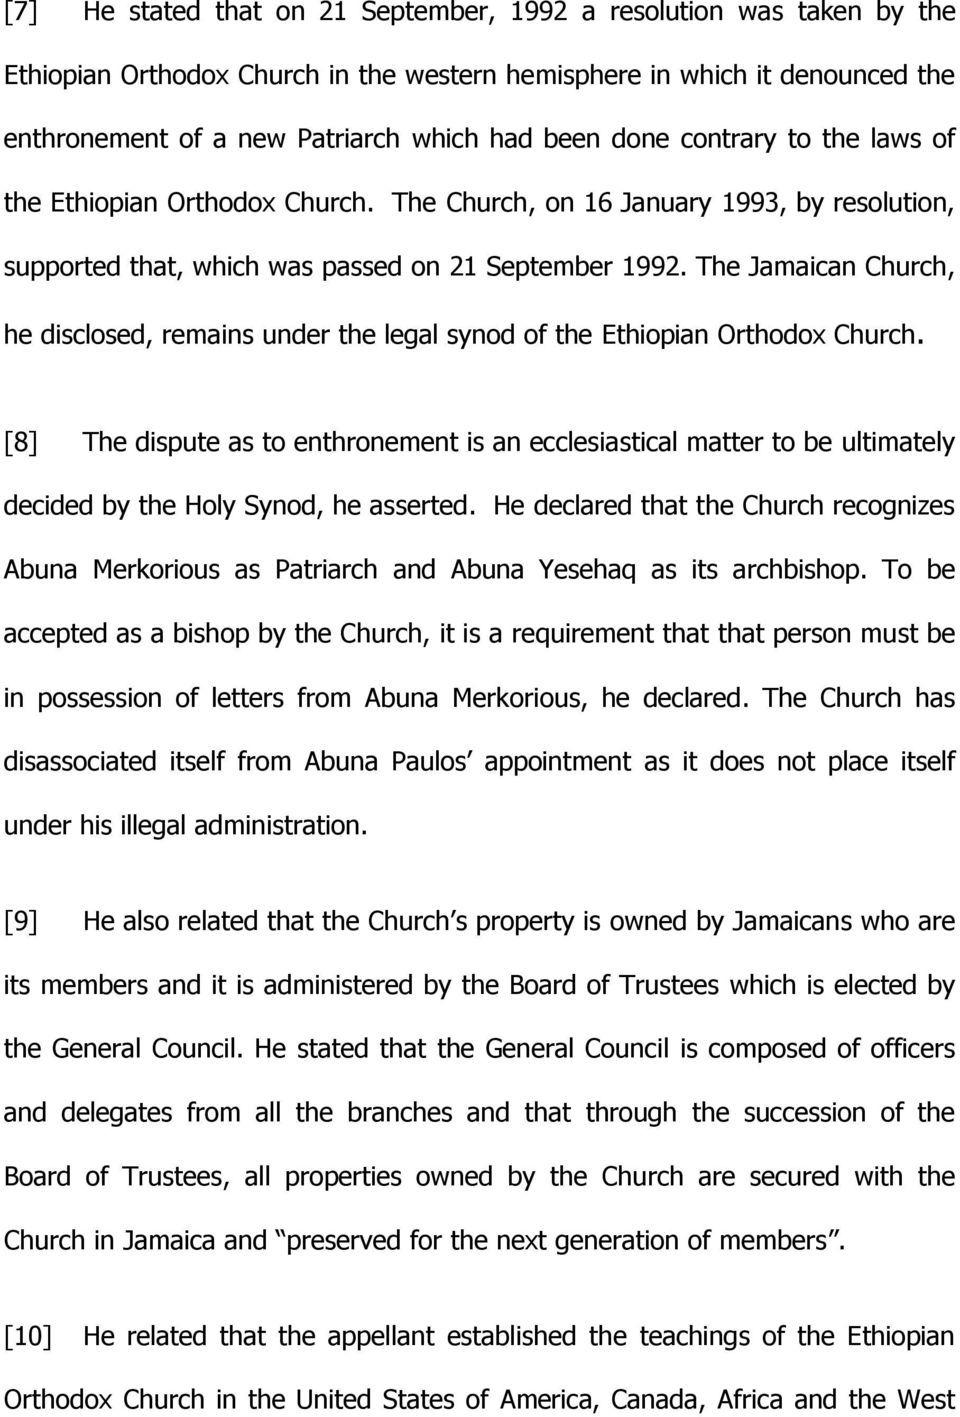 The Jamaican Church, he disclosed, remains under the legal synod of the Ethiopian Orthodox Church.